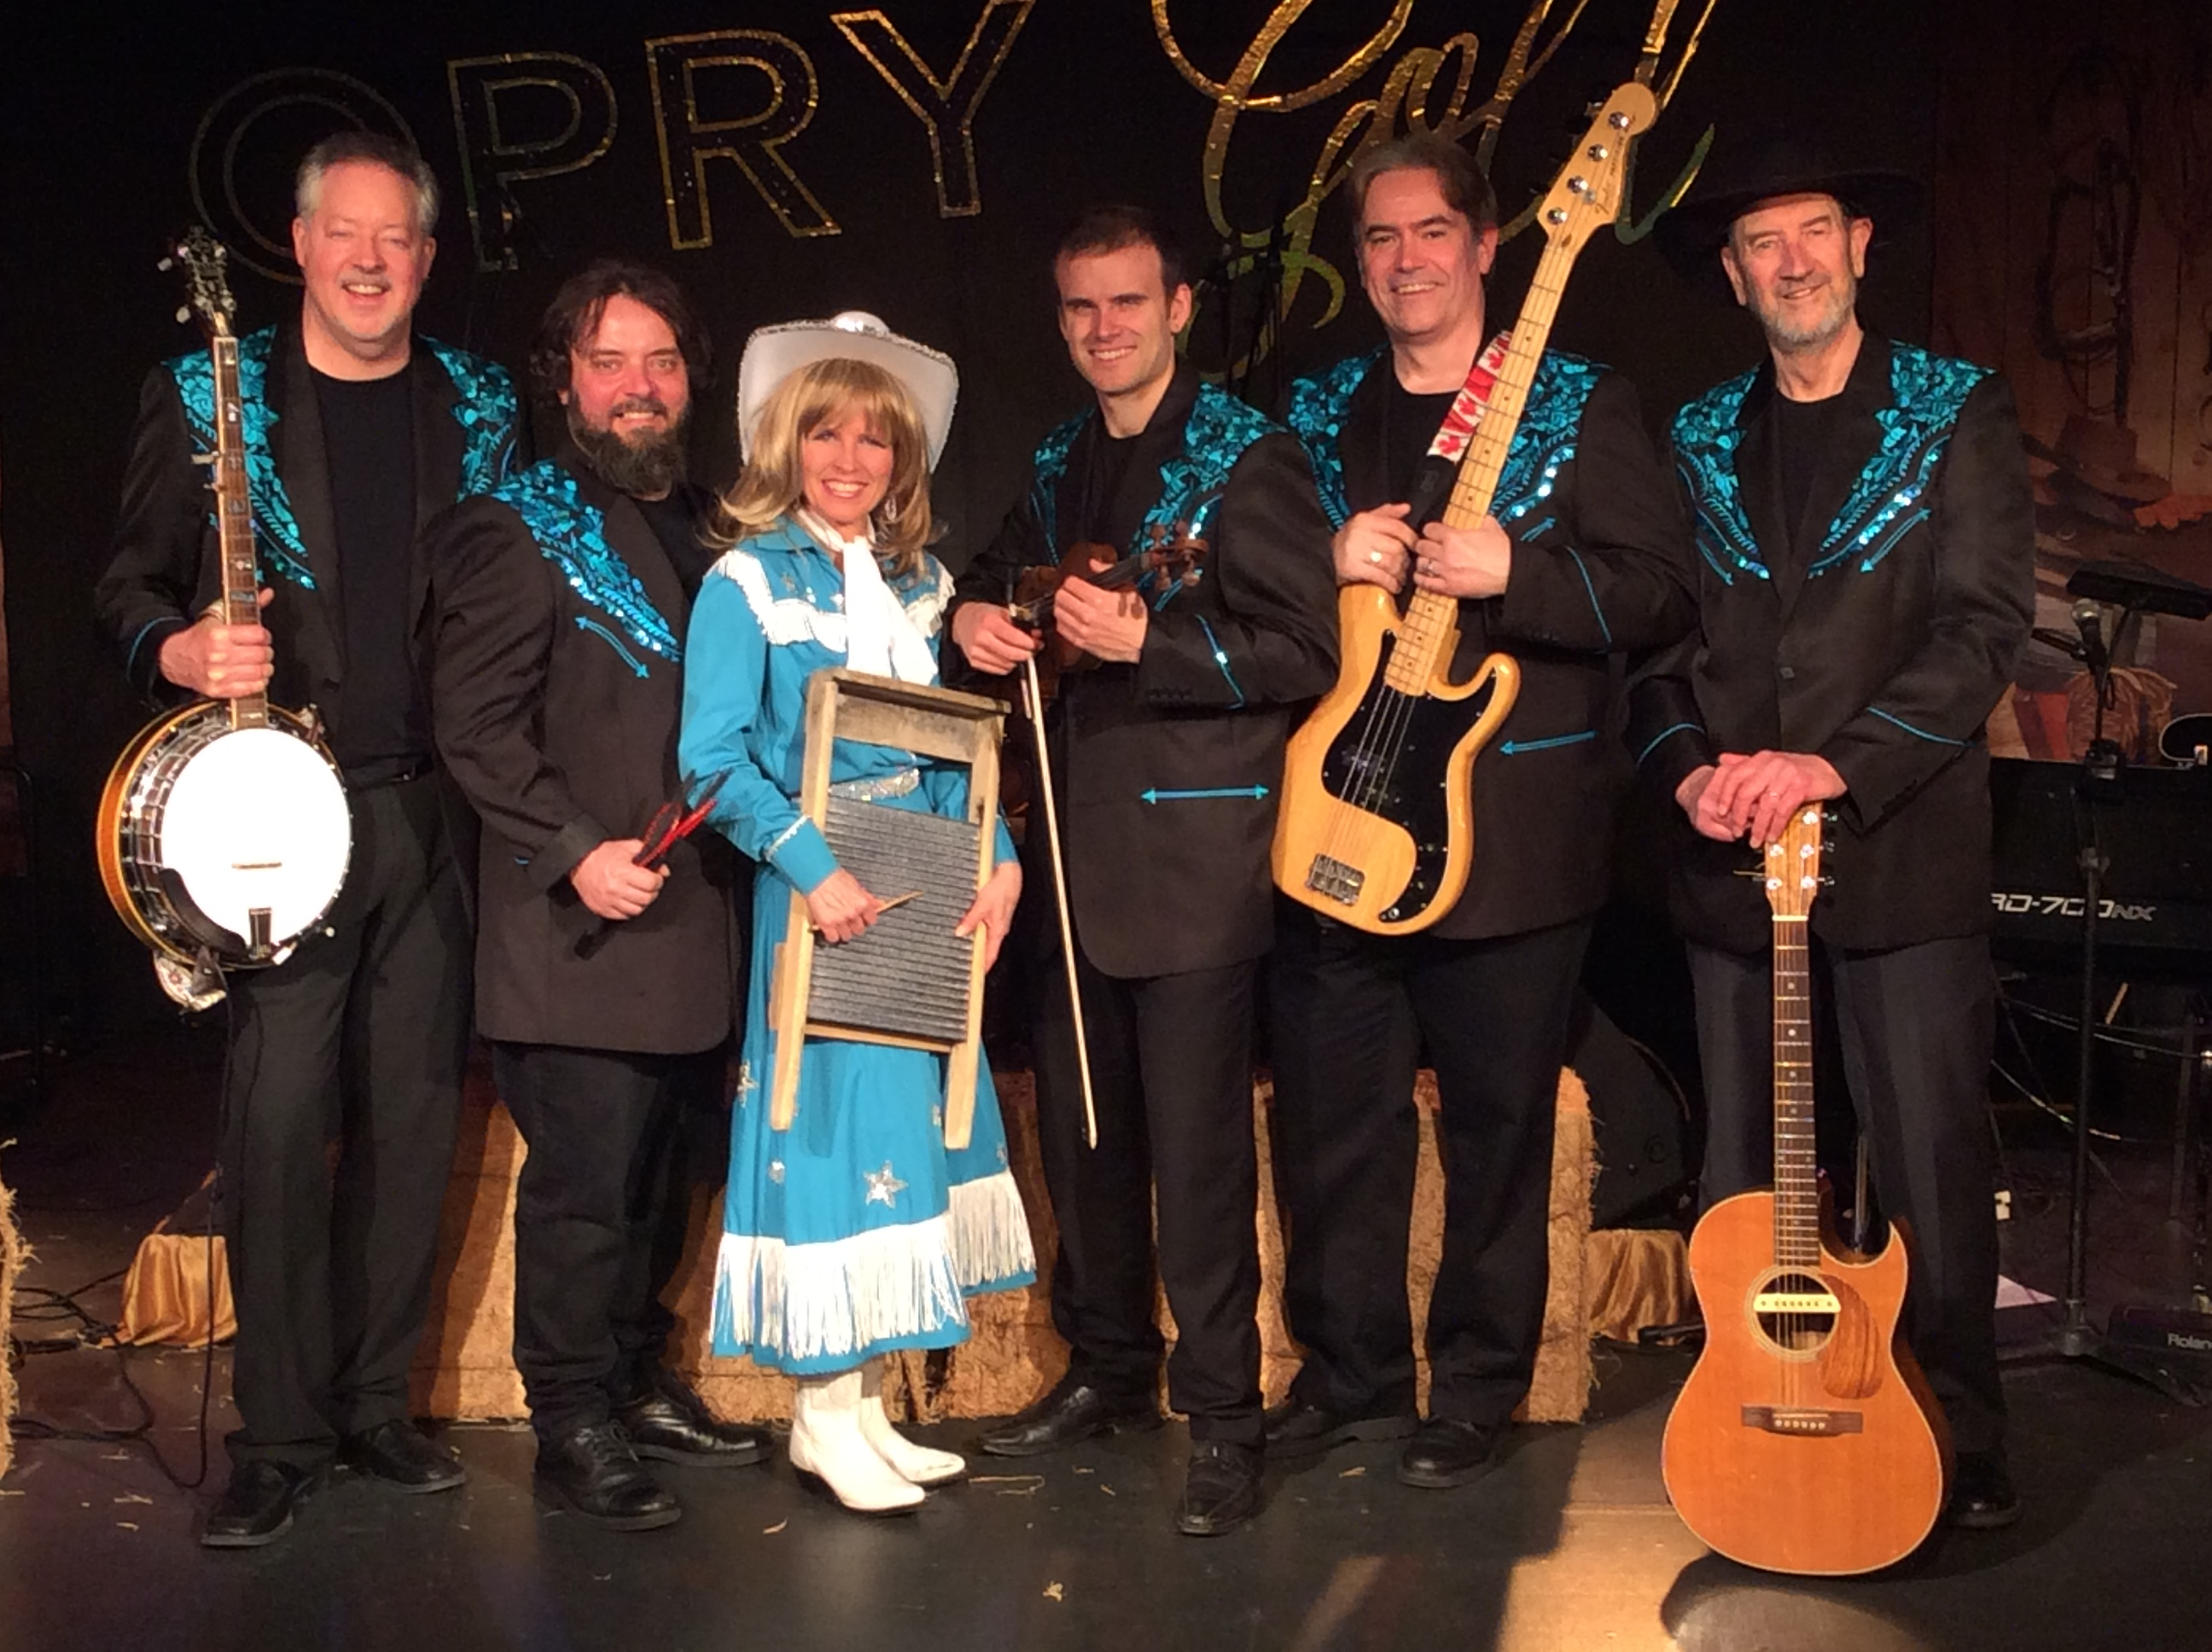 Opry Gold cast (standing with instruments)